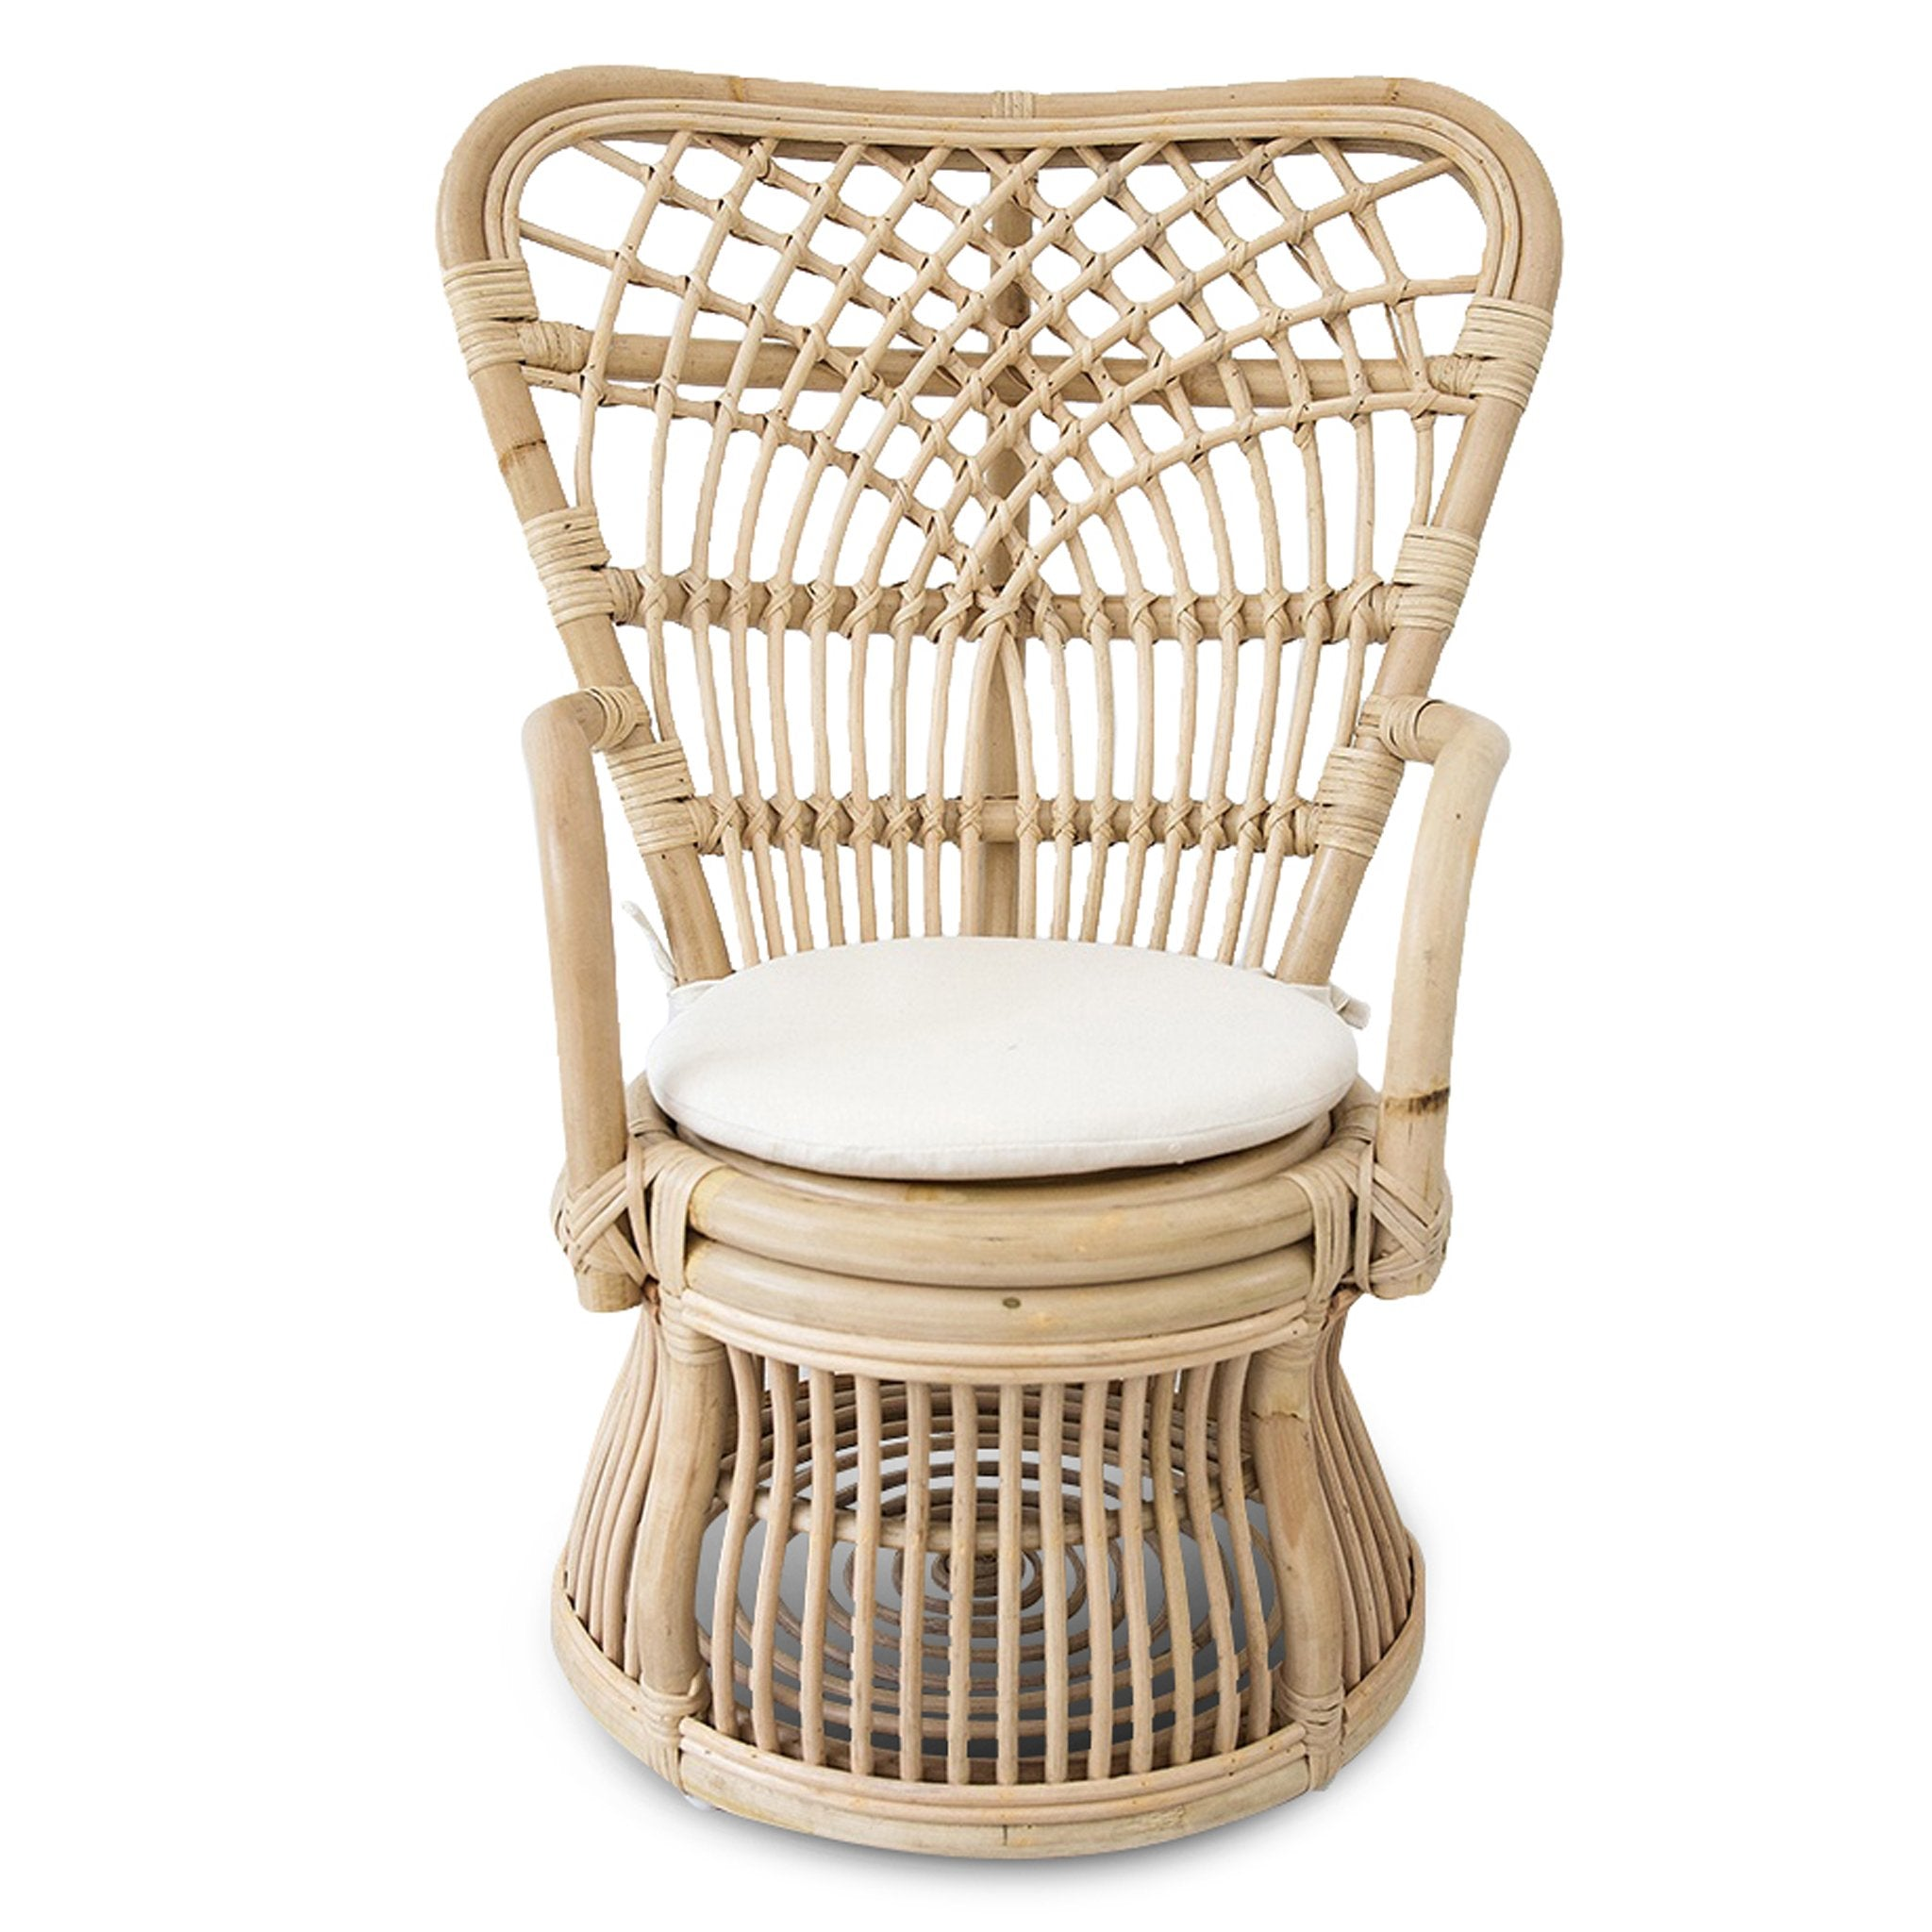 Cleo Peacock Rattan Kids Chair Natural Interior Secrets